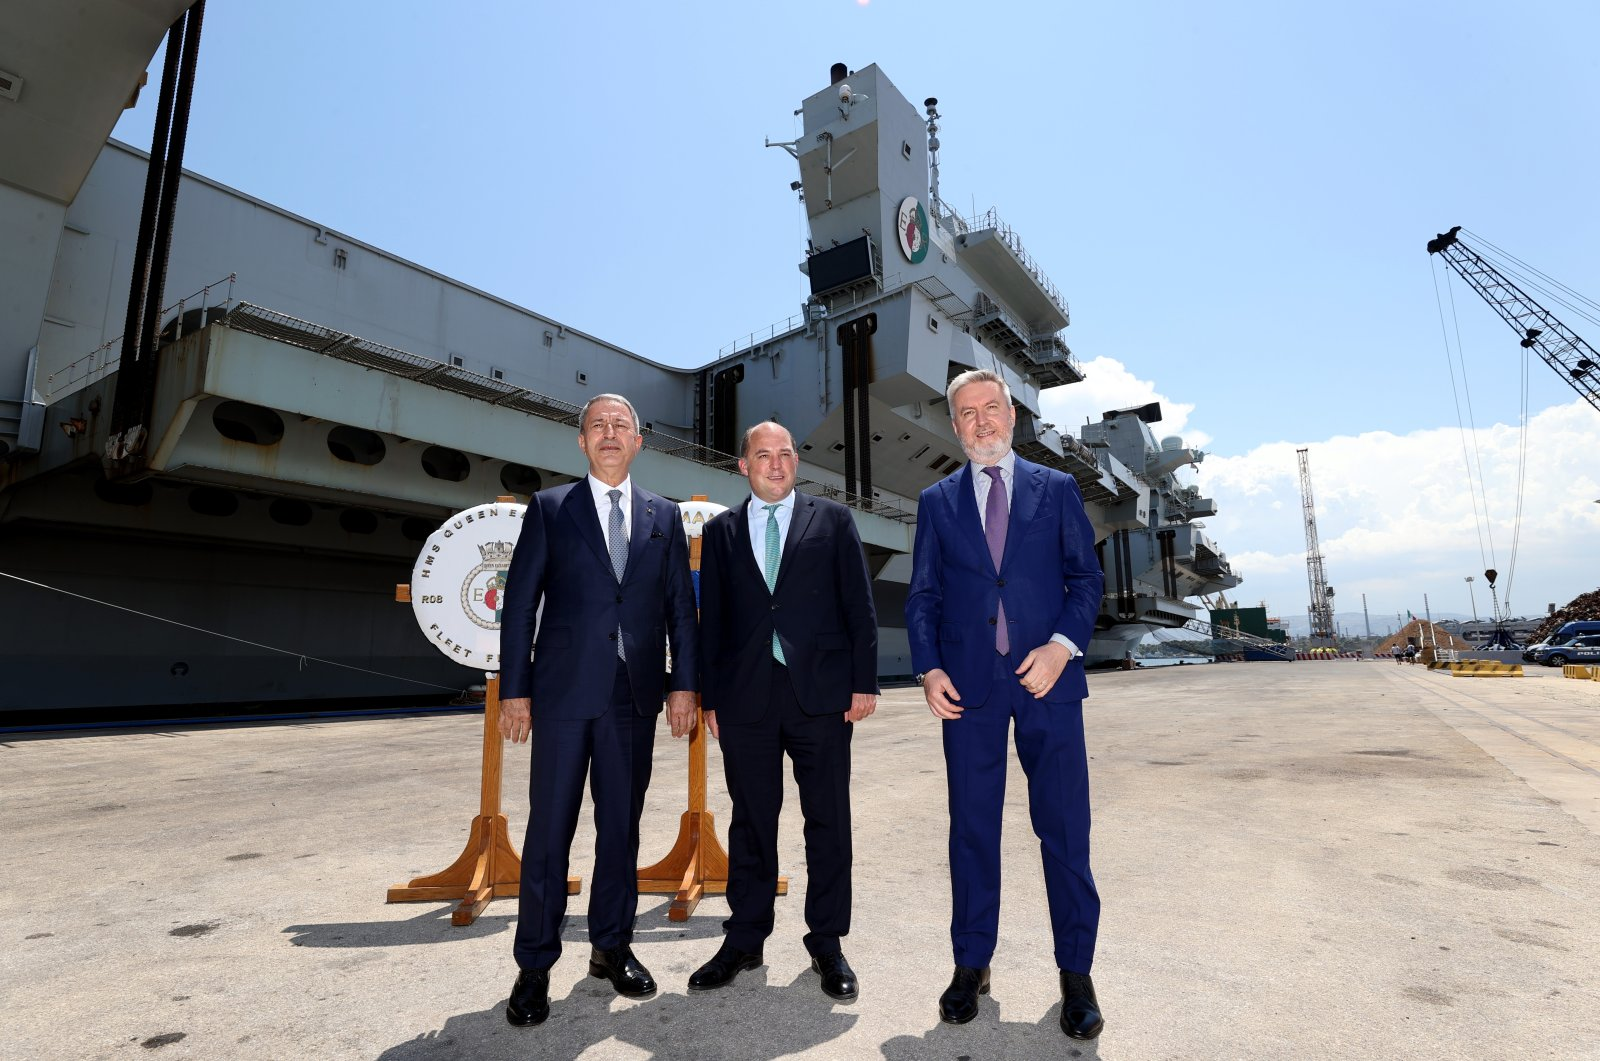 Minister of National Defense Hulusi Akar (L), his Italian counterpart Lorenzo Guerini (R) and U.K. counterpart Ben Wallace pose for a picture in Sicily, Italy June 11, 2021 (AA Photo)